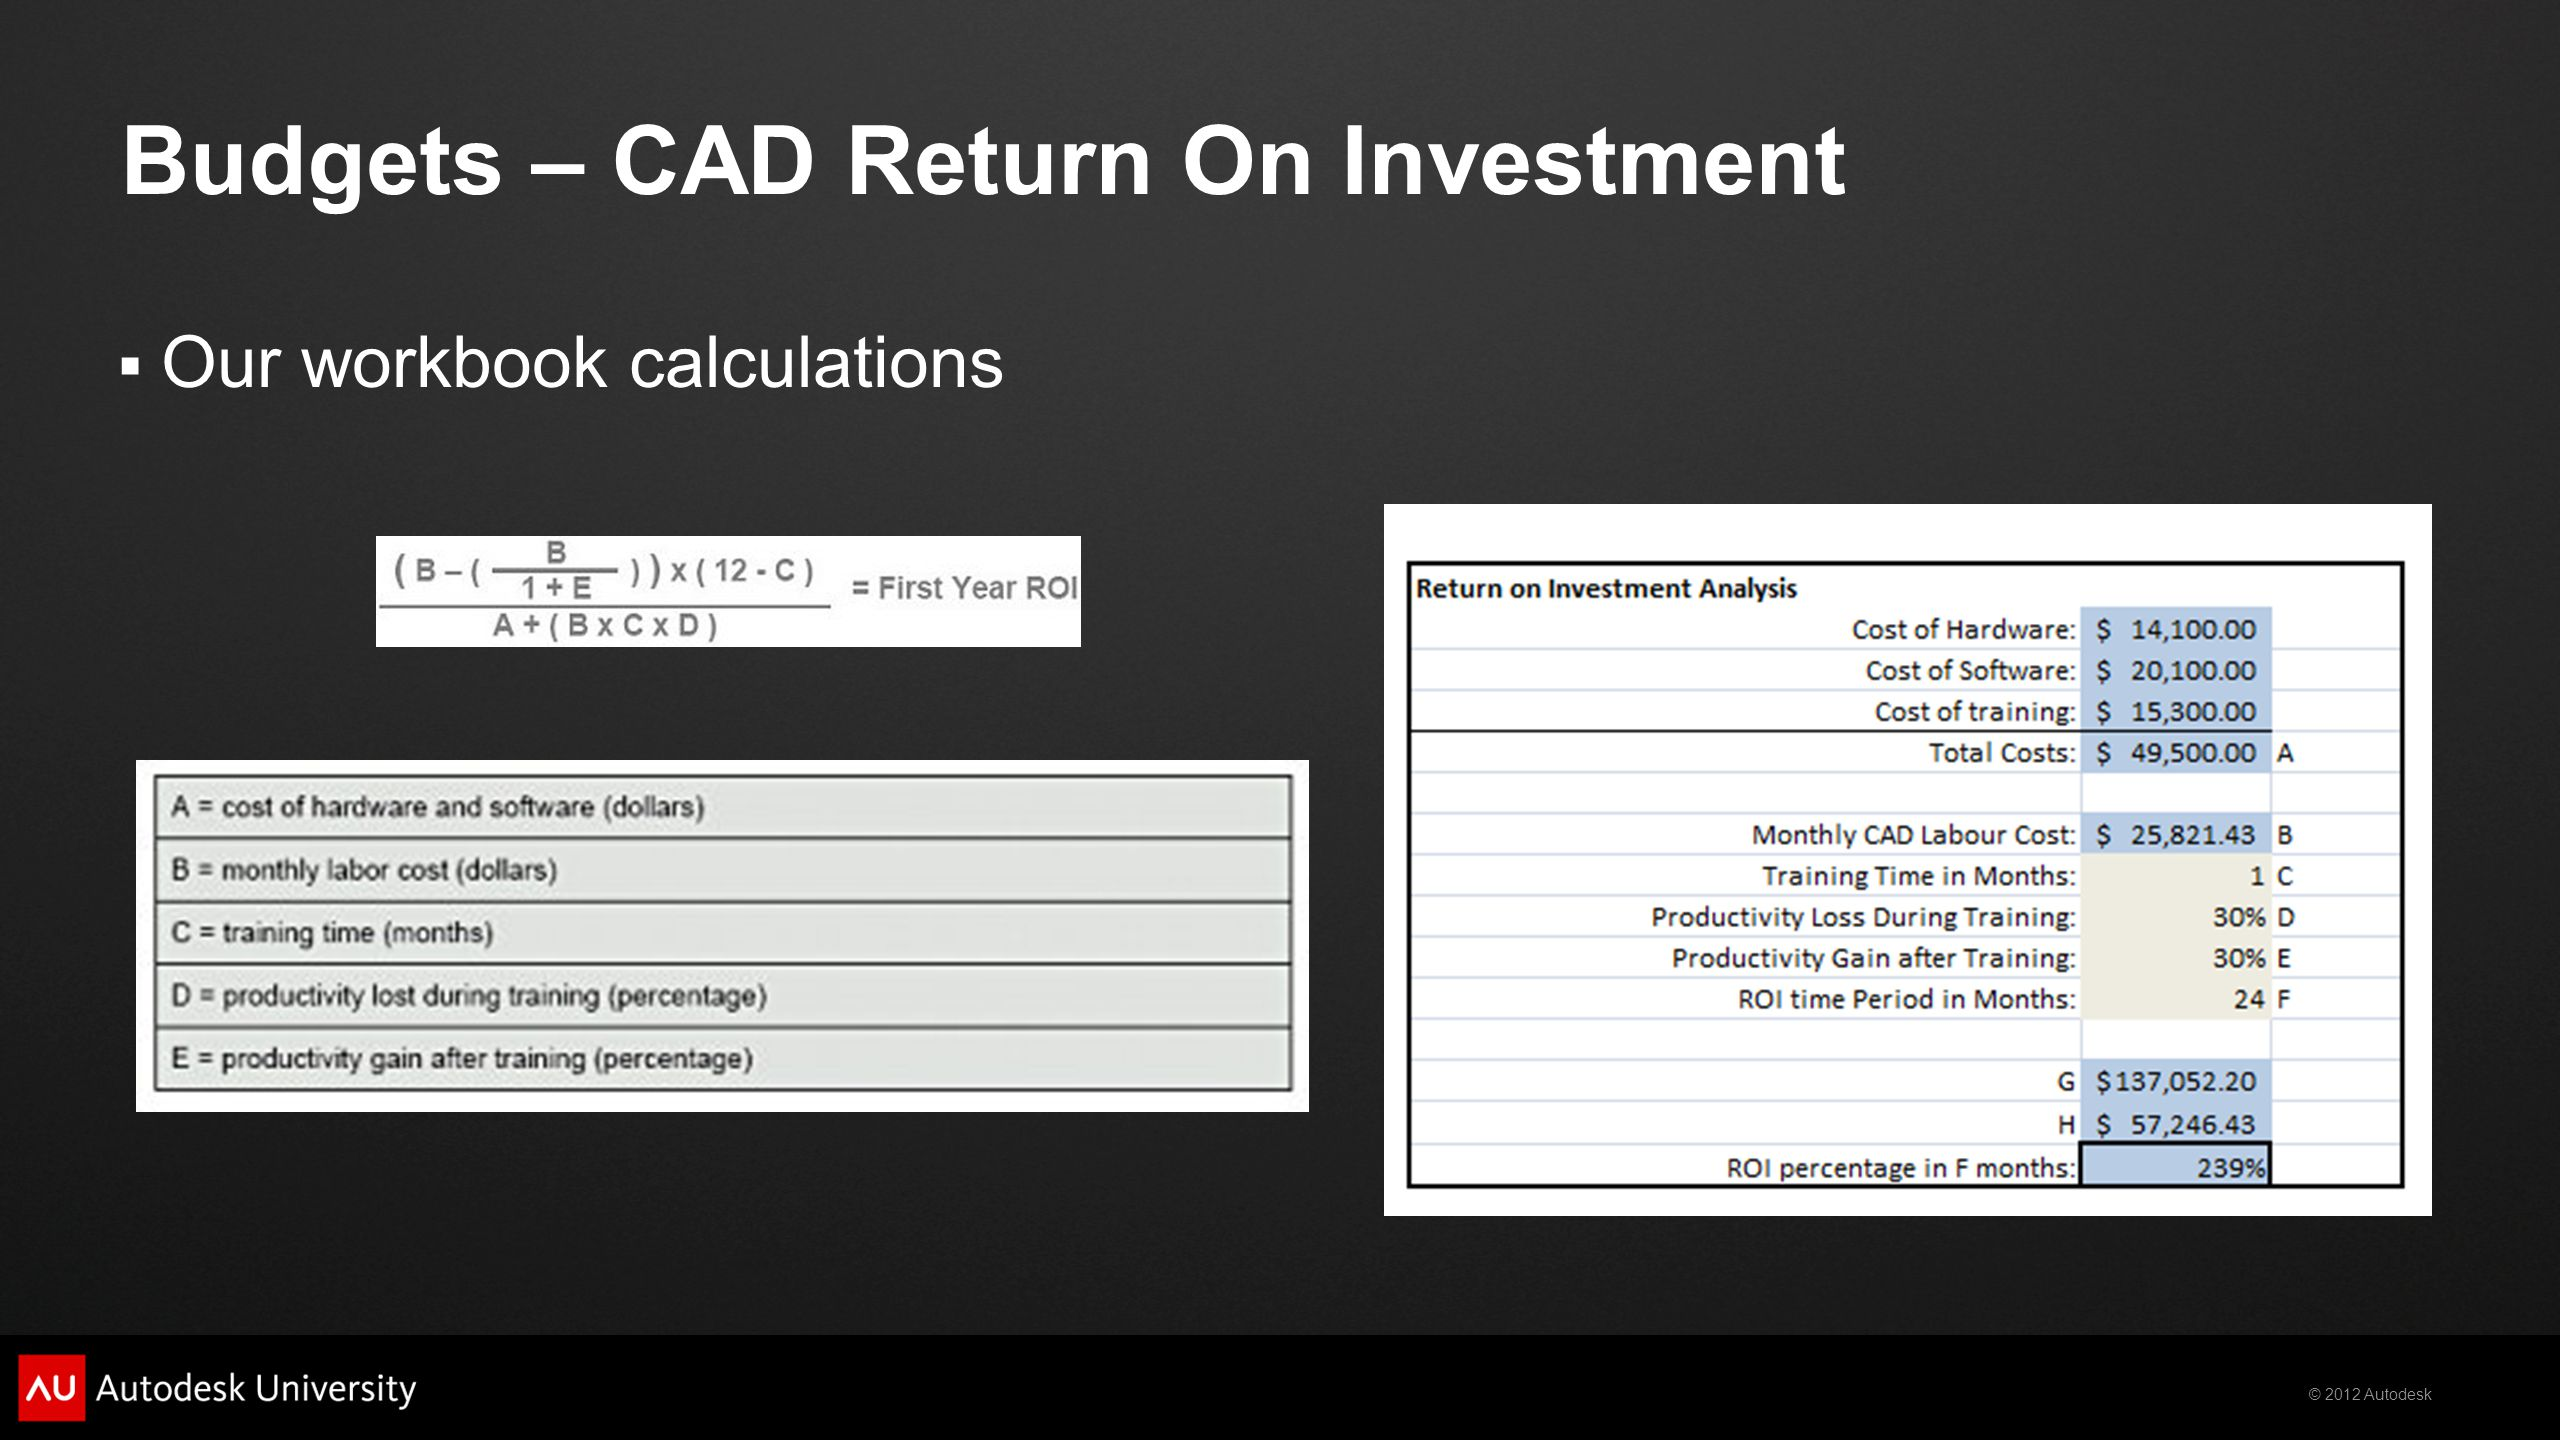 Budgets – CAD Return On Investment